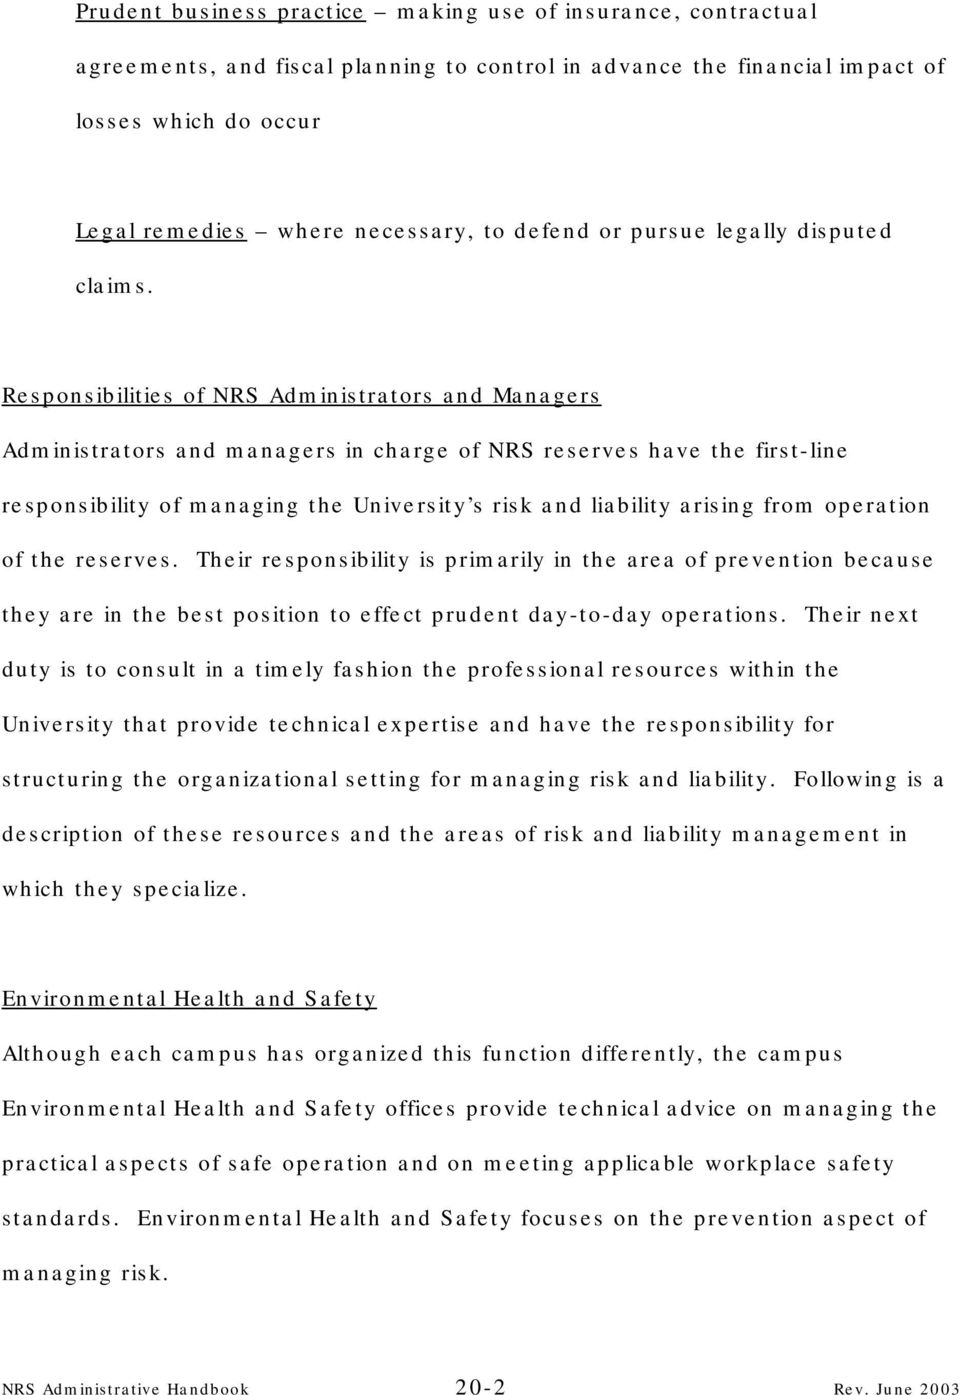 Responsibilities of NRS Administrators and Managers Administrators and managers in charge of NRS reserves have the first-line responsibility of managing the University s risk and liability arising